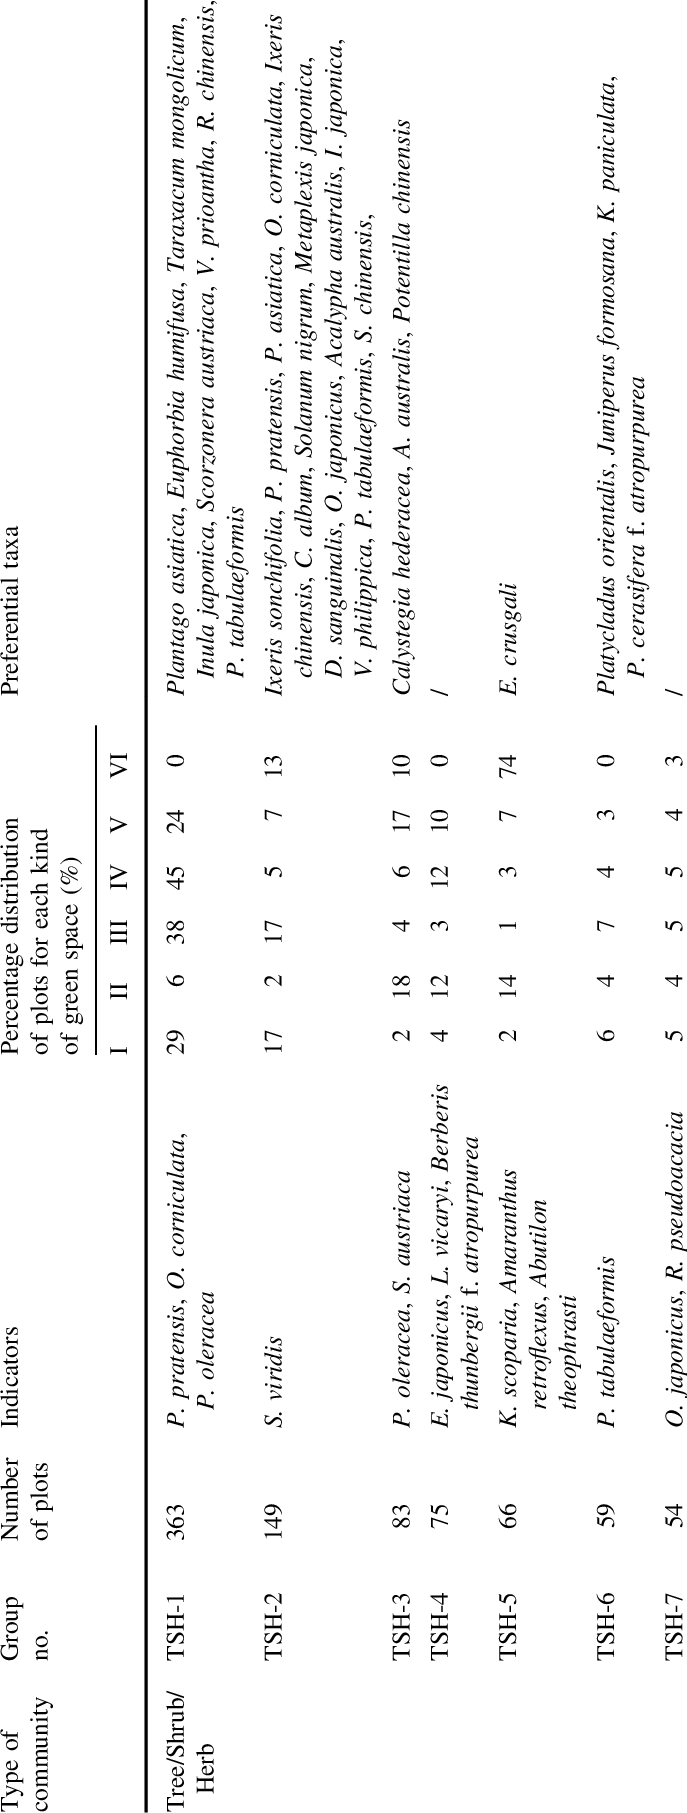 Classification of plant communities in different types of